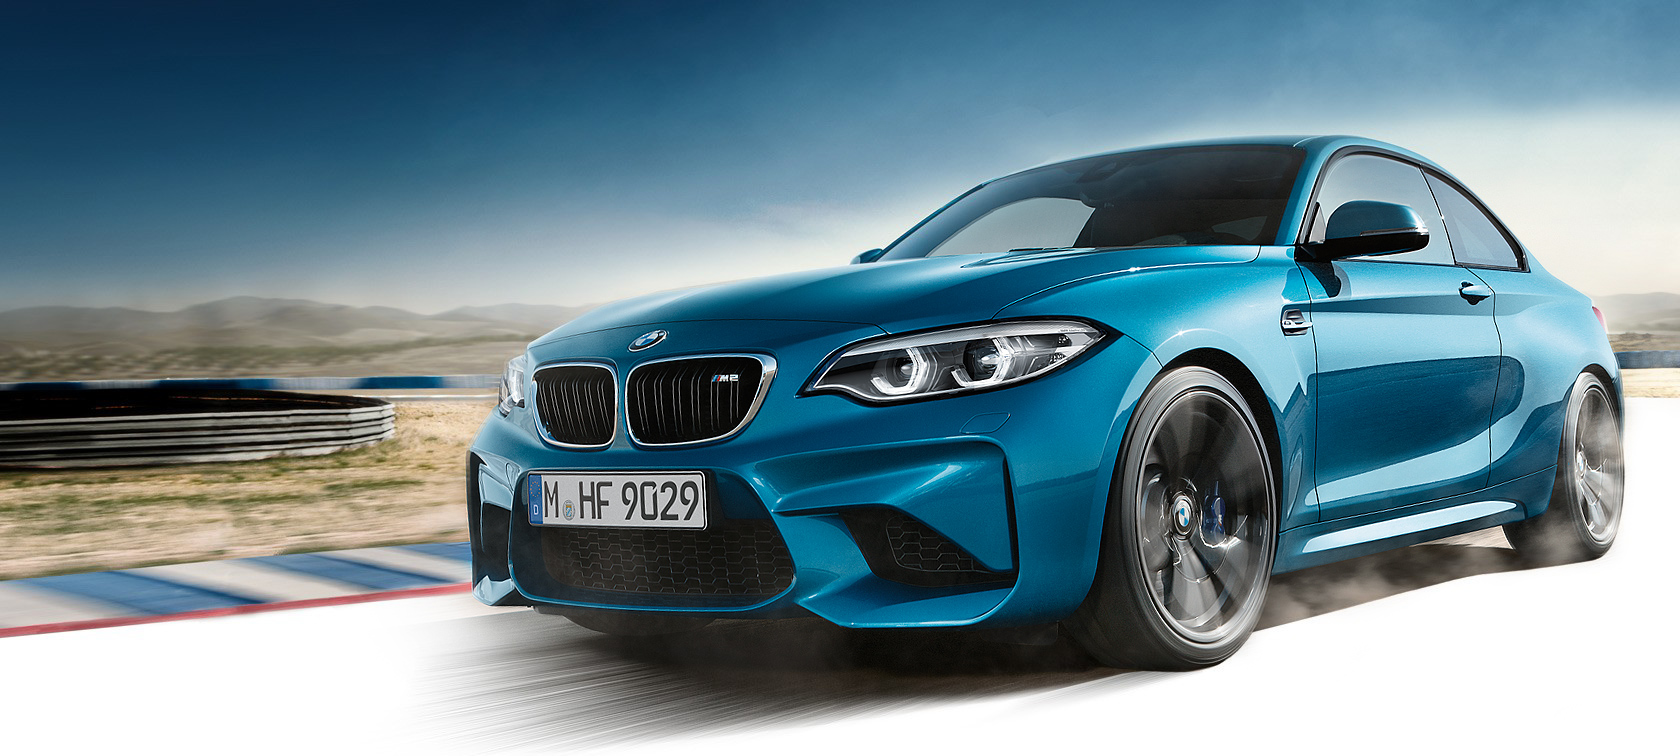 INTRODUCING THE BMW M2